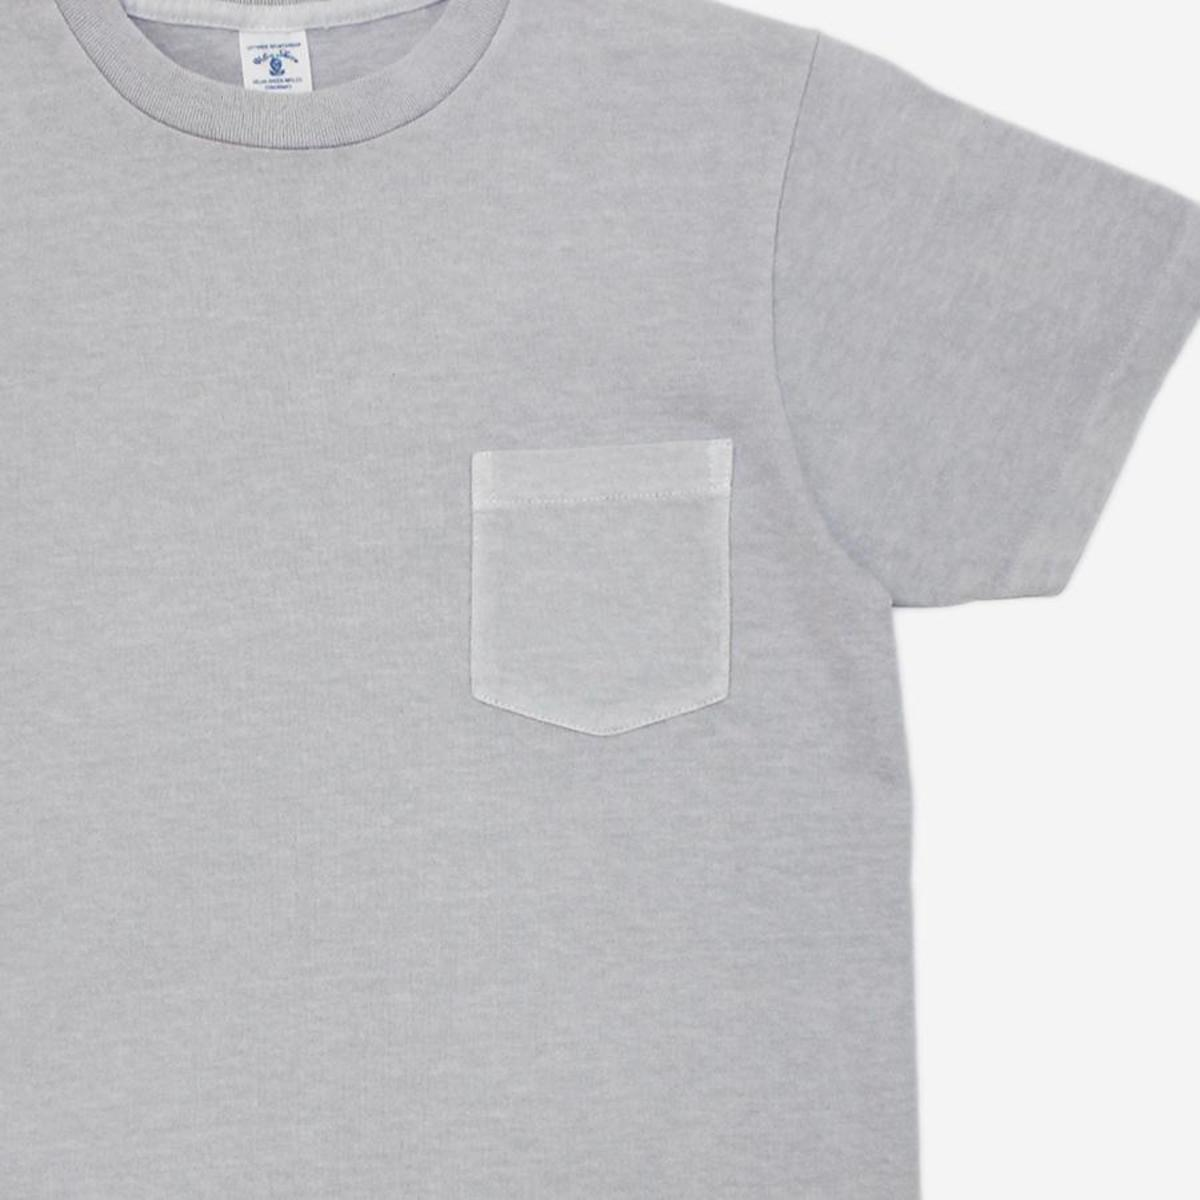 077b715dd1b9 Velva Sheen Pigment Dyed Pocket T-Shirt - Light Grey